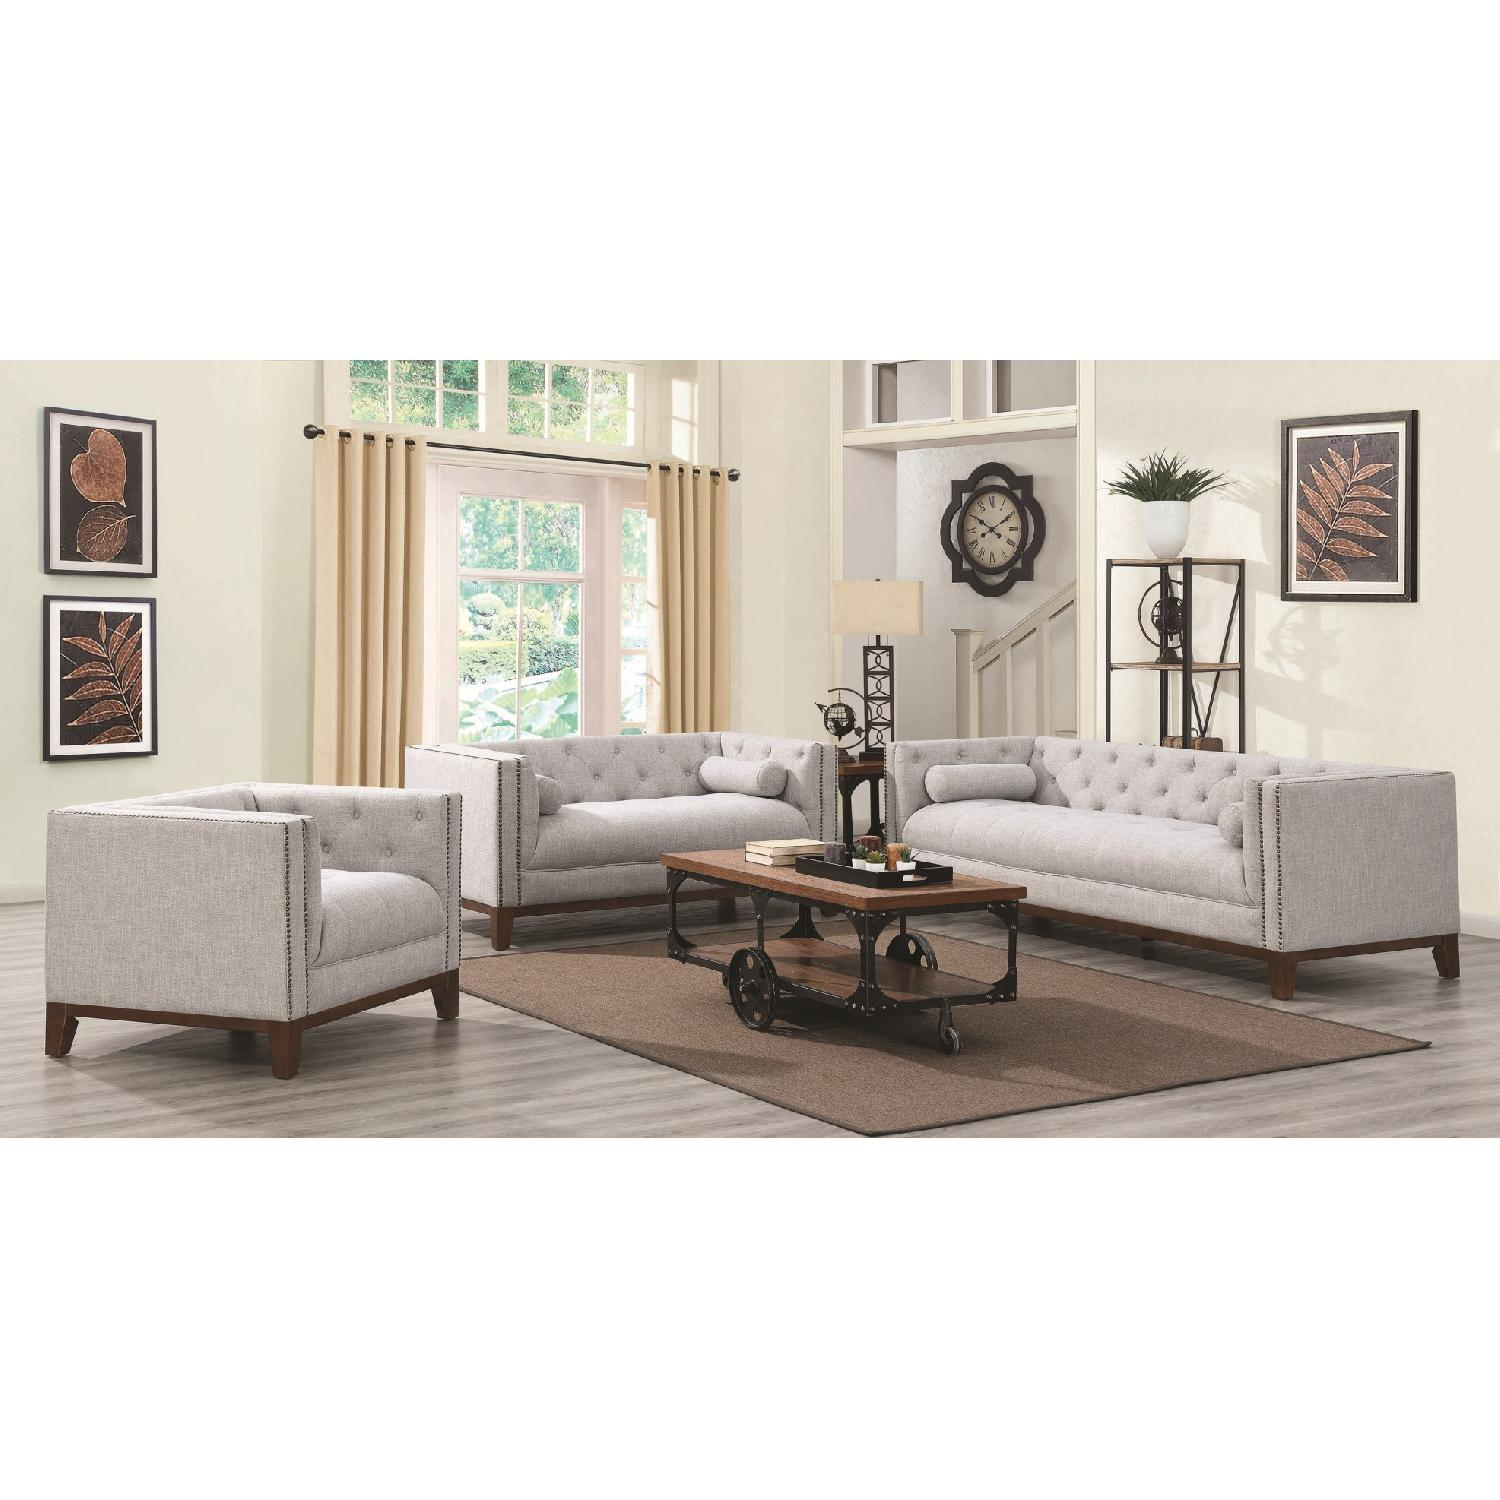 Modern Style Sofa w/ Tufted Buttons & Nailhead Accent - image-13